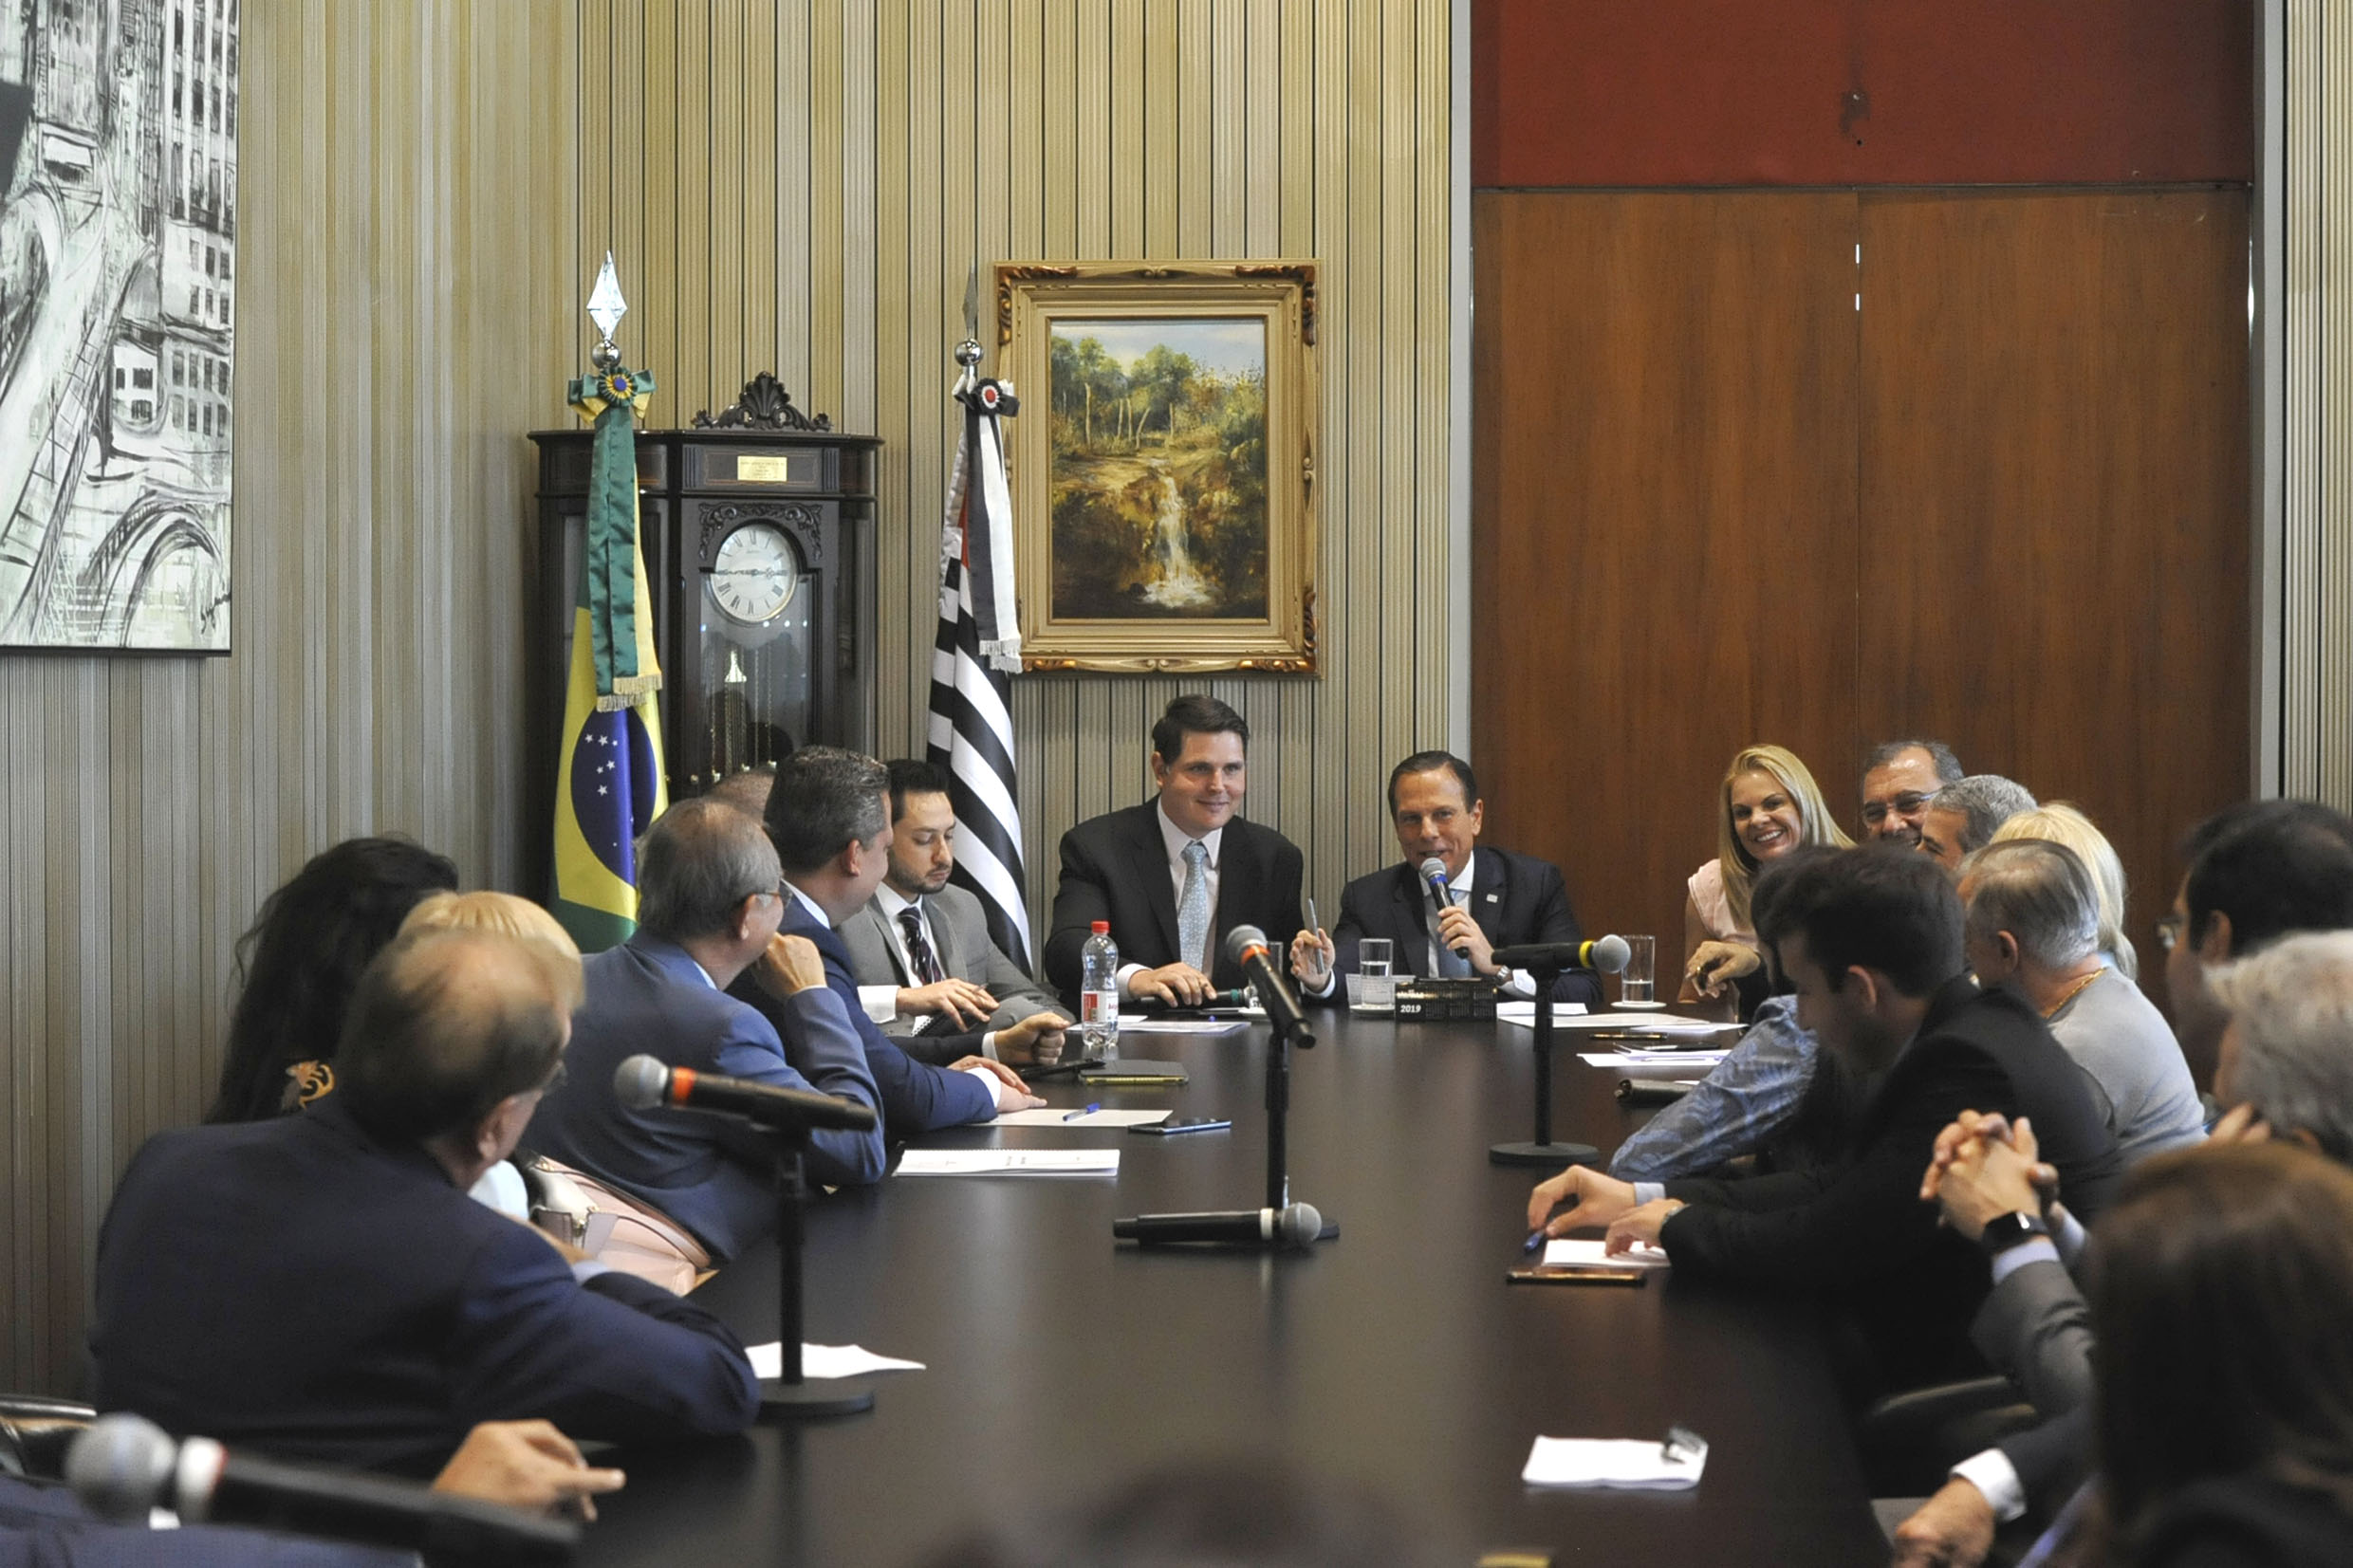 Parlamentares na visita<a style='float:right' href='https://www3.al.sp.gov.br/repositorio/noticia/N-08-2019/fg237319.jpg' target=_blank><img src='/_img/material-file-download-white.png' width='14px' alt='Clique para baixar a imagem'></a>